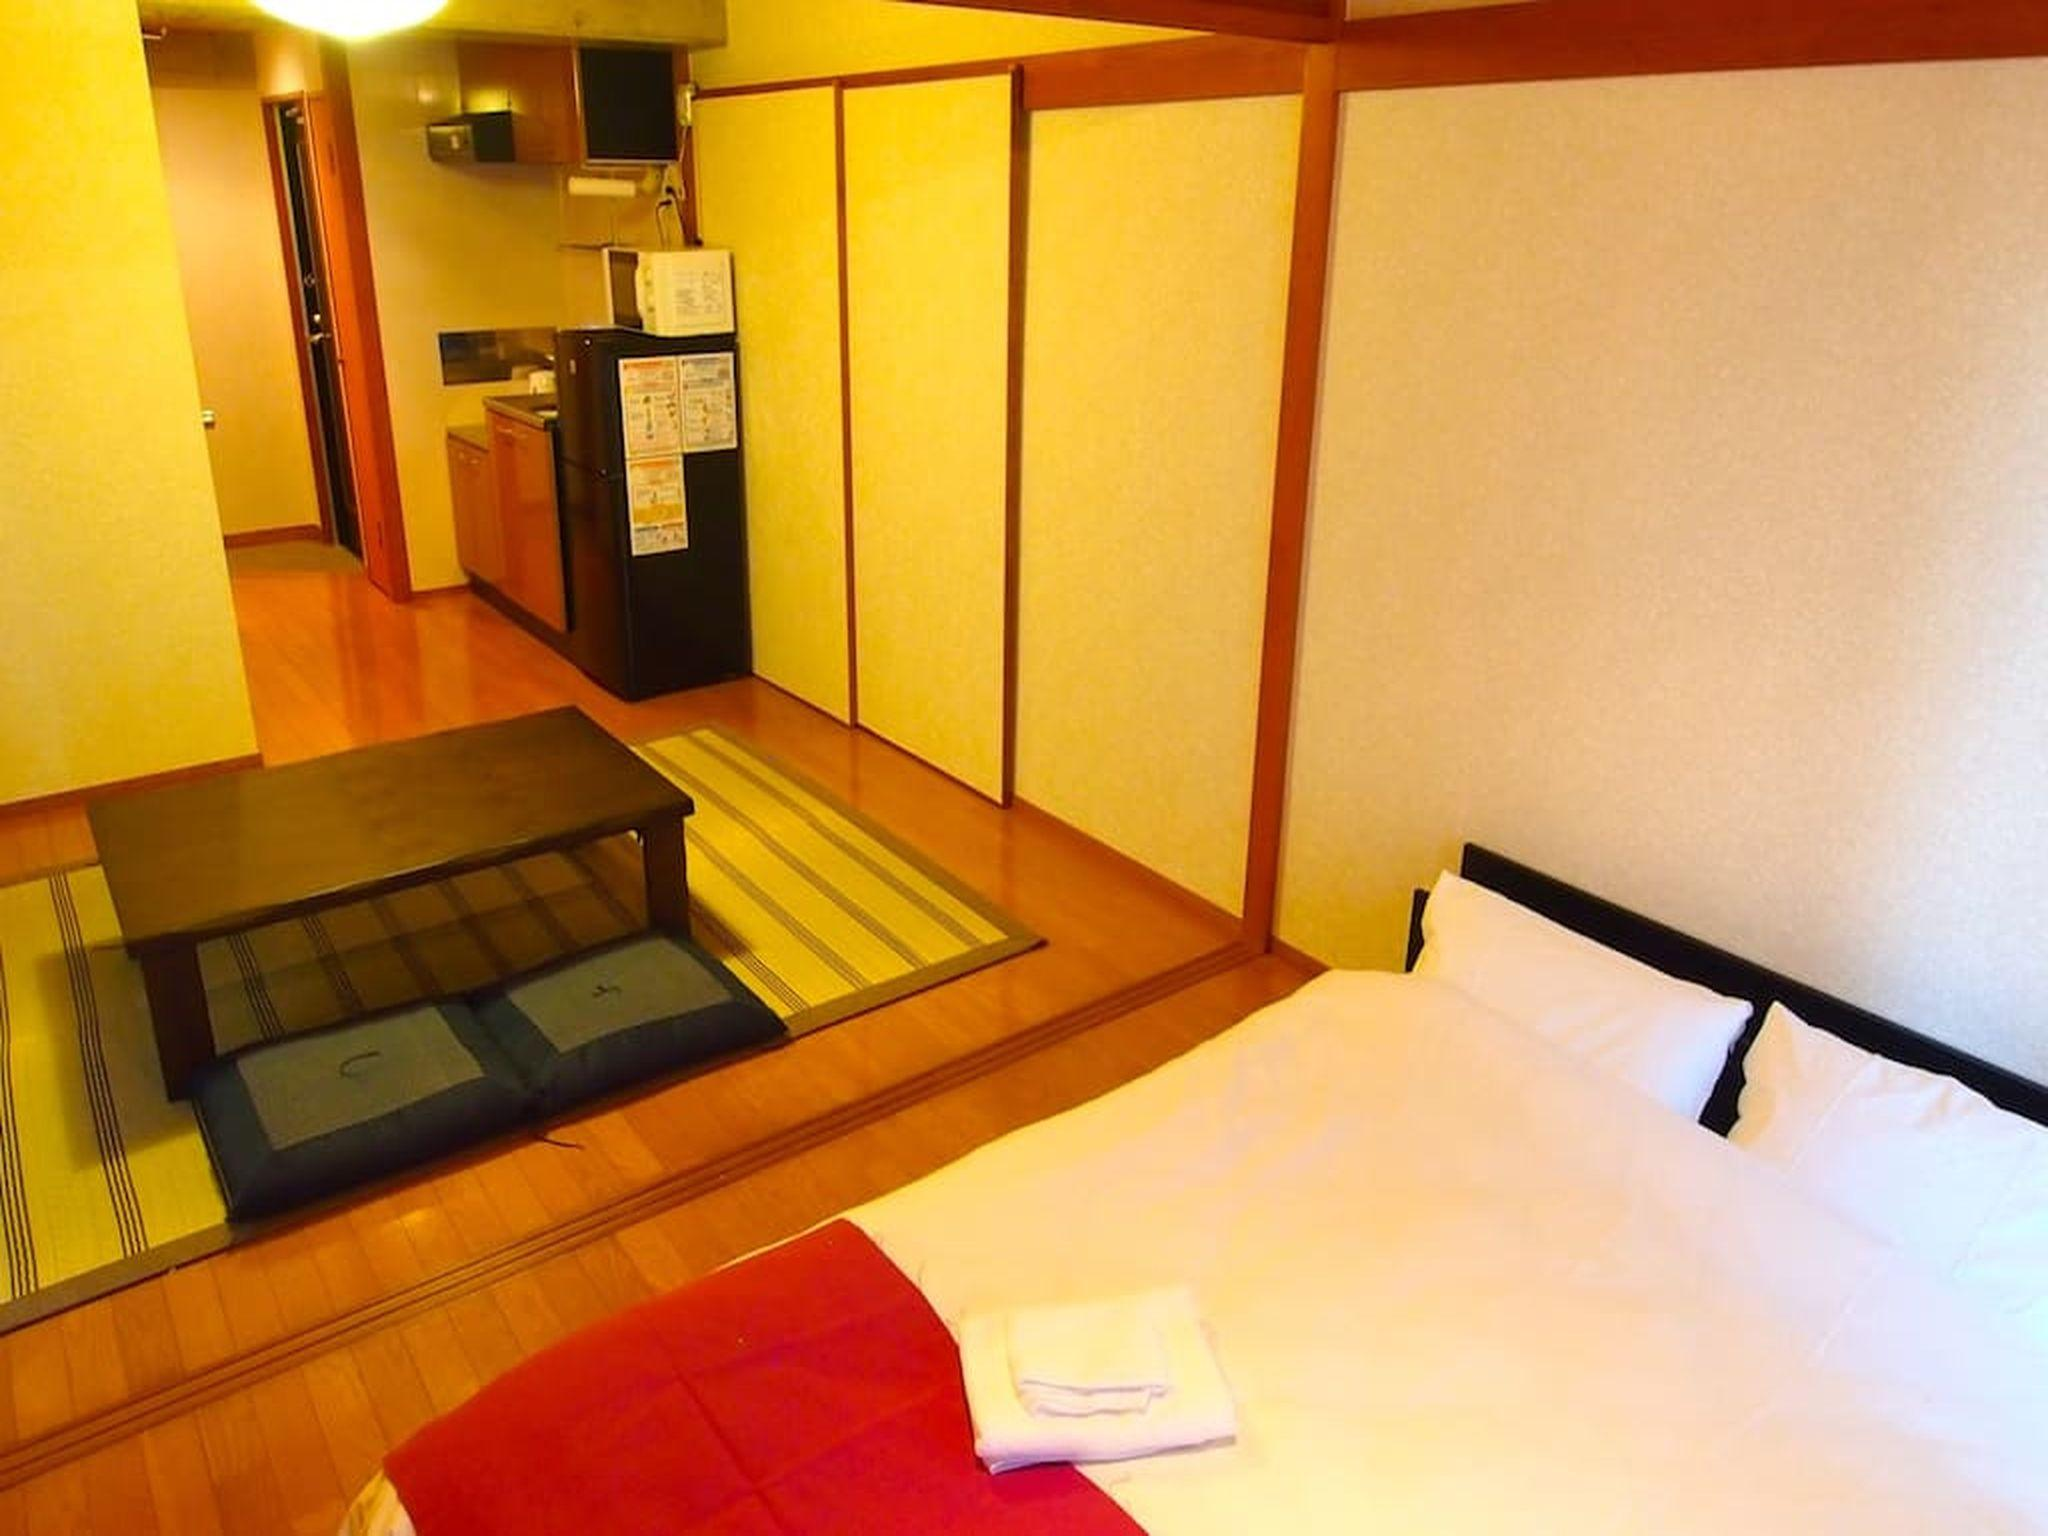 Monte Meuble Location Best Price On Min Gion Min Hakata Japan Style In With